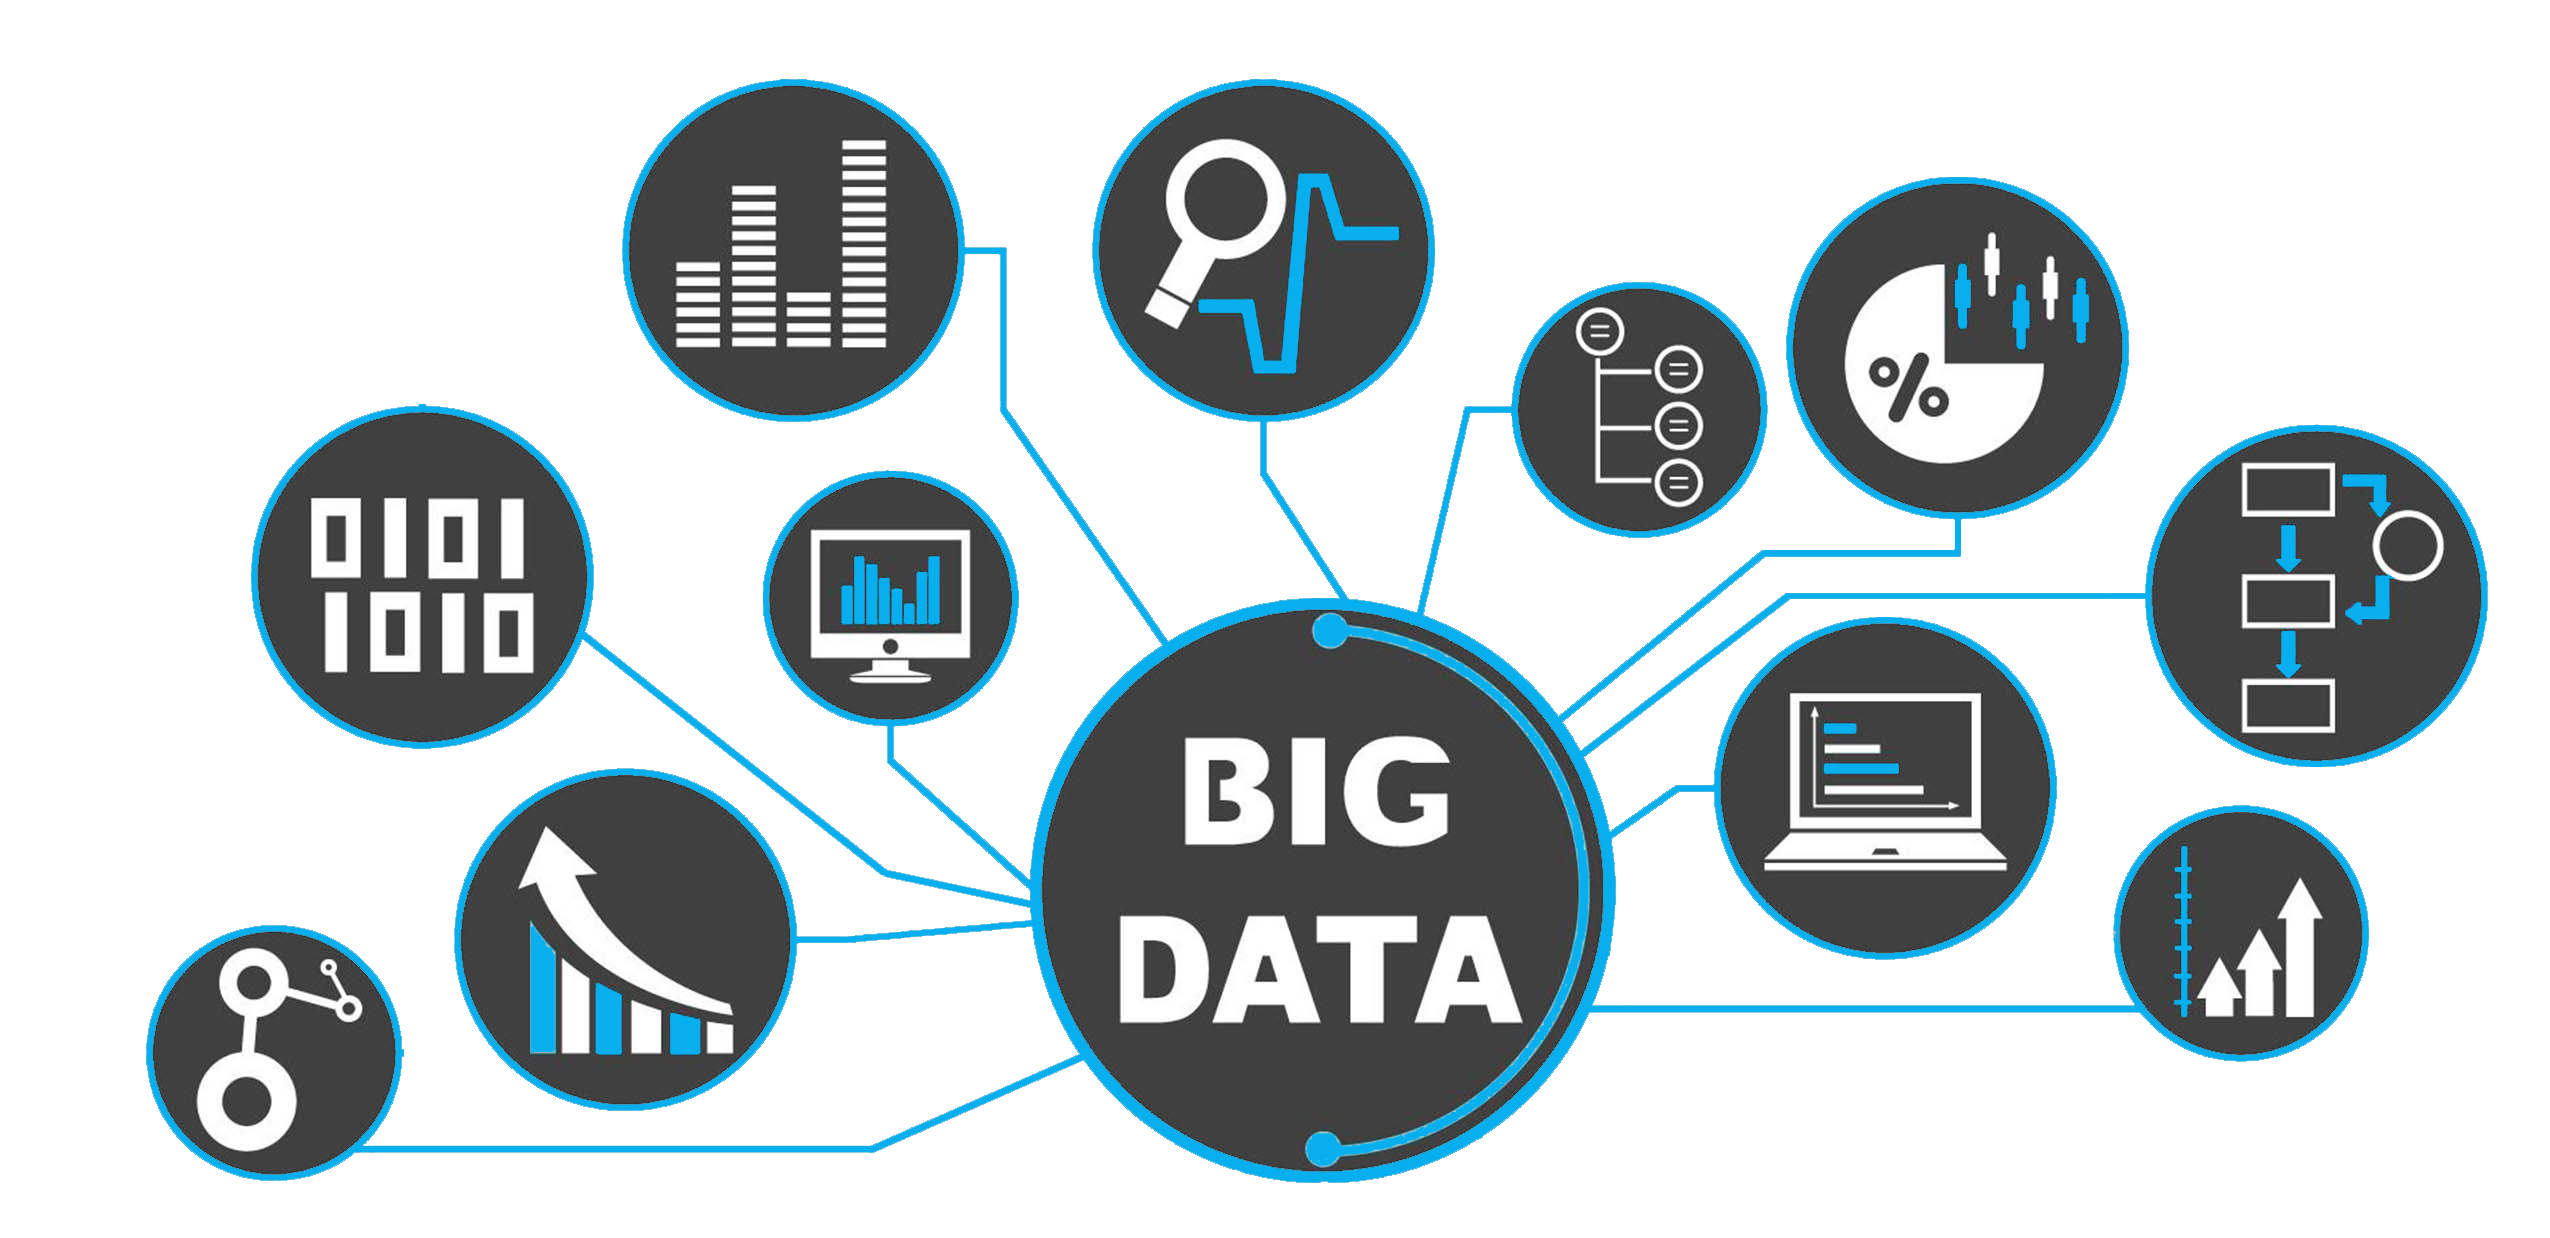 Big data – everything about big data / habr